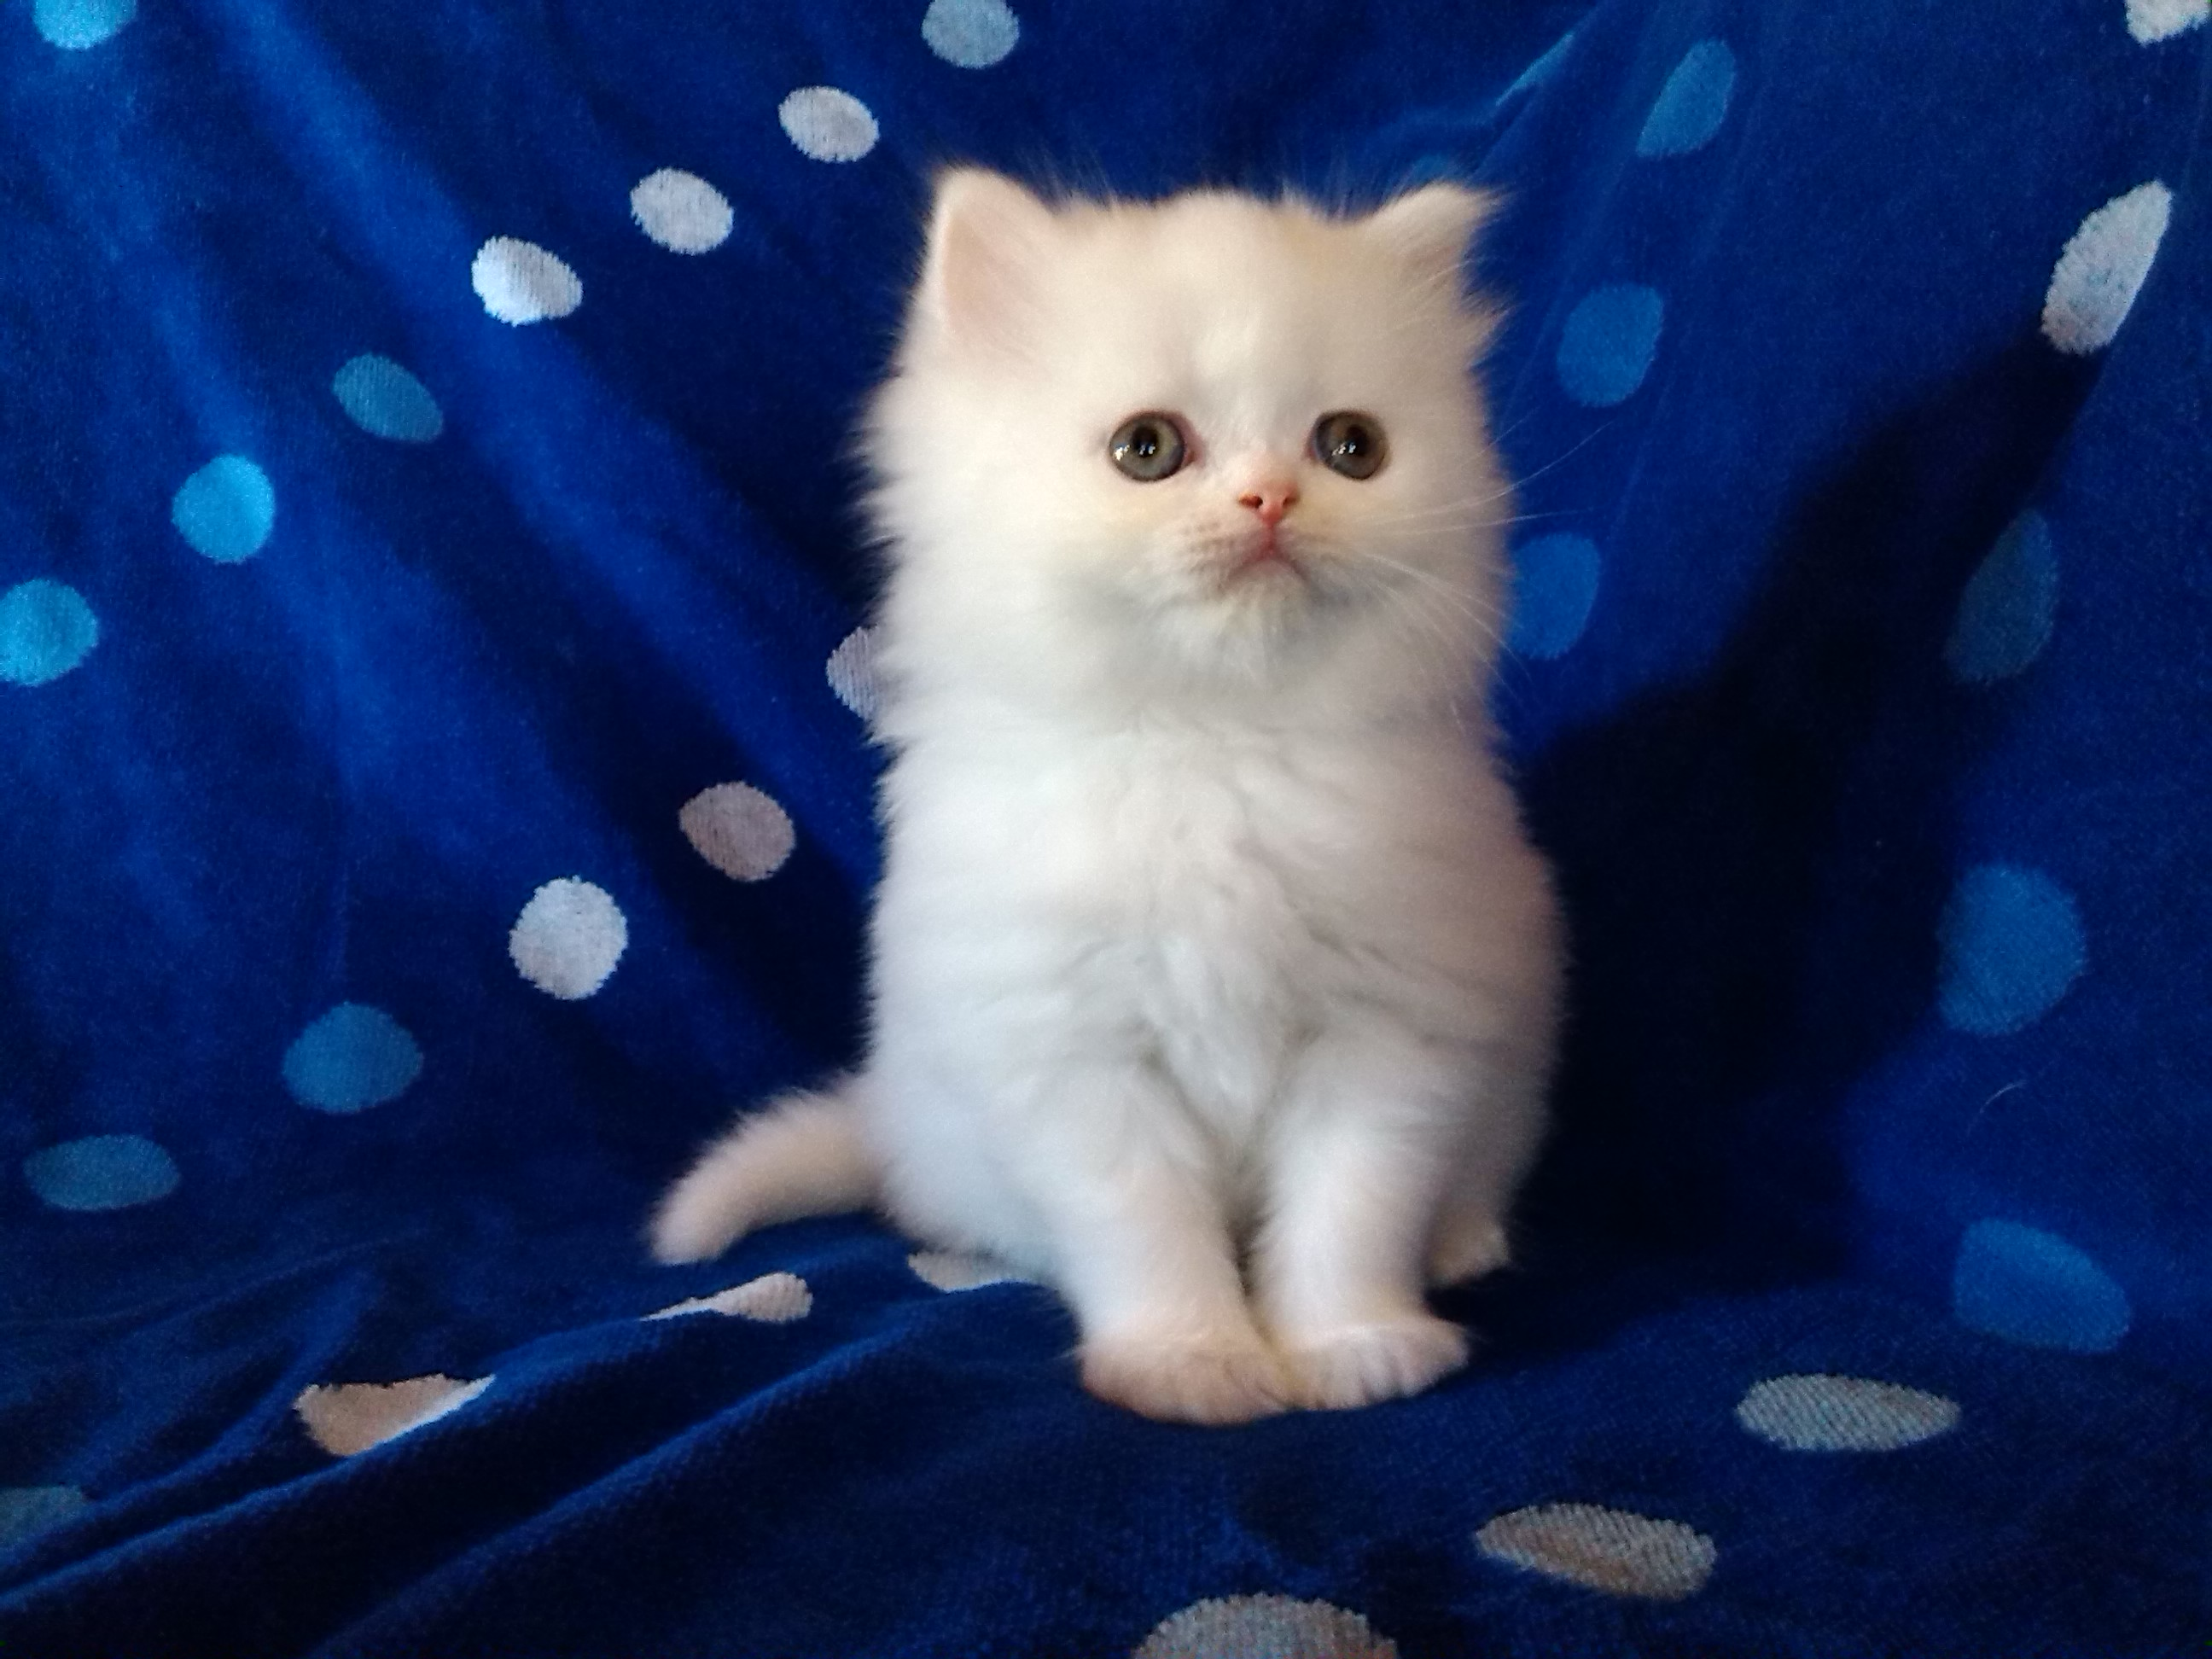 A sweet expression promises the easygoing personality which the Persian is known for. They communicate delightfully with their large expressive eyes and make charming pets for all age groups.